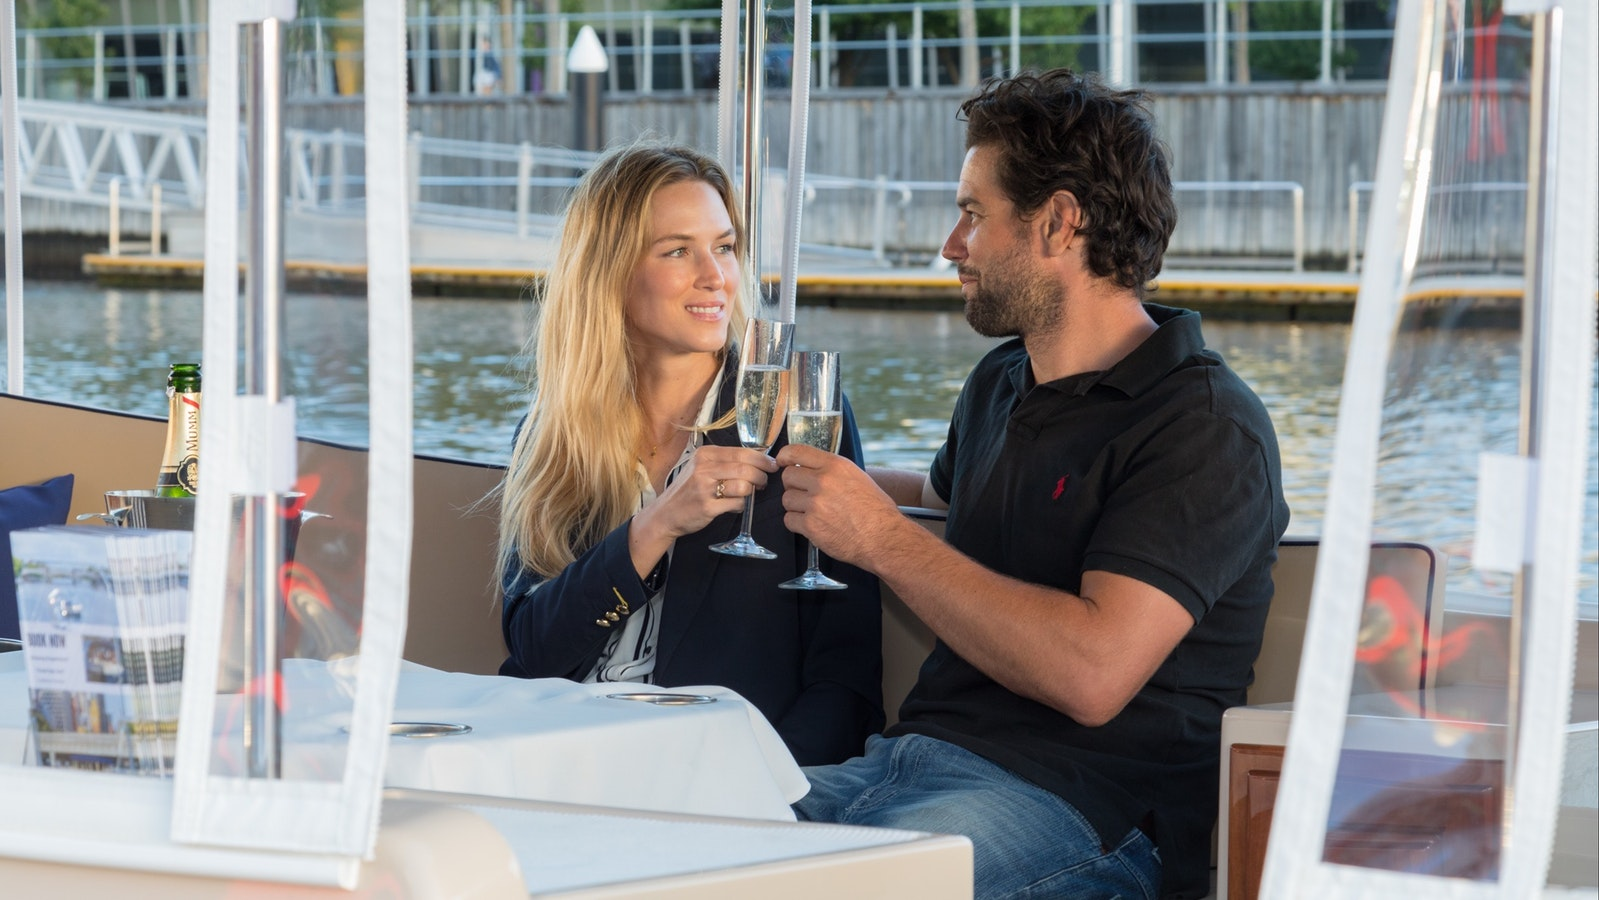 Treat your loved one to a romantic cruise on the Yarra River